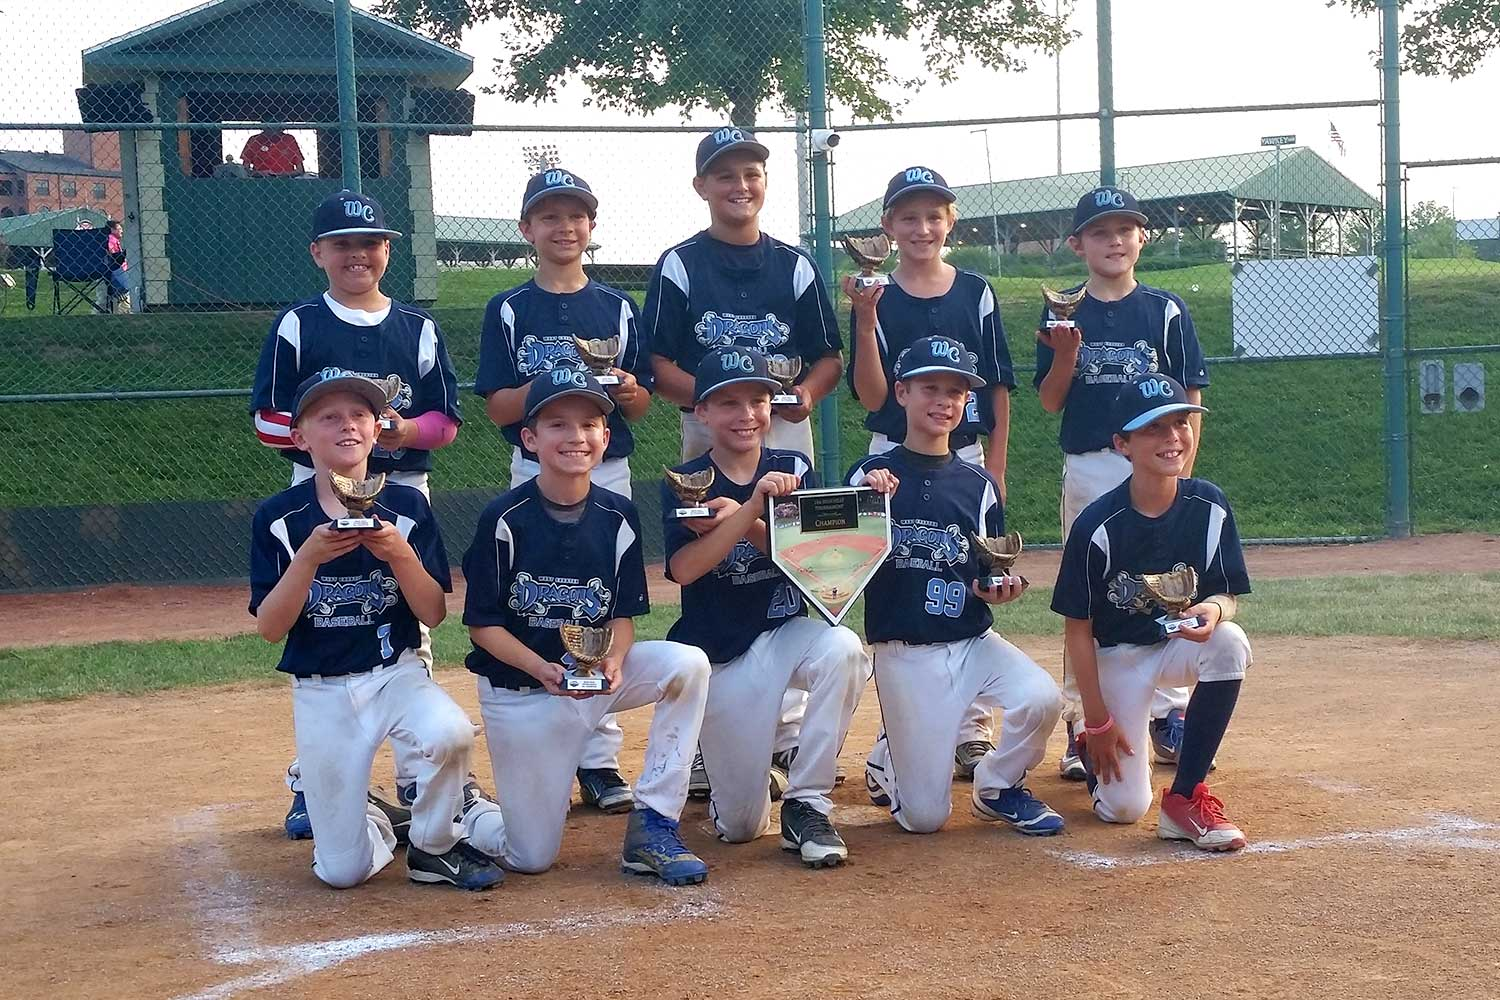 10U West Chester Dragons AL win the High Heat Tournament at The Ripken Experience Aberdeen in July 2016